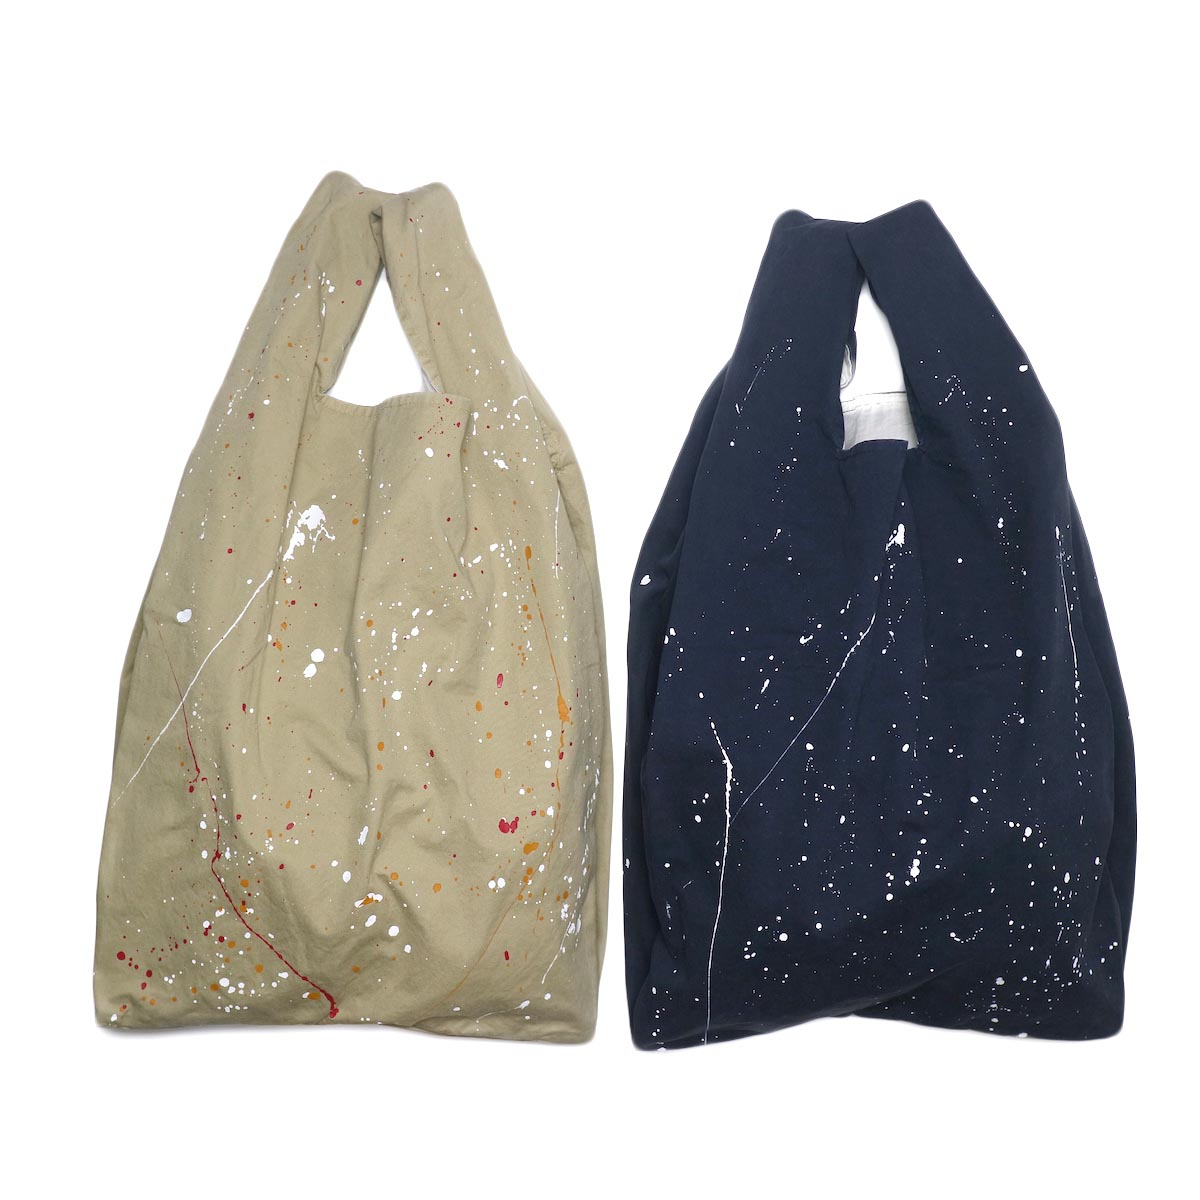 MASTER & Co. / ECO BAG 正面